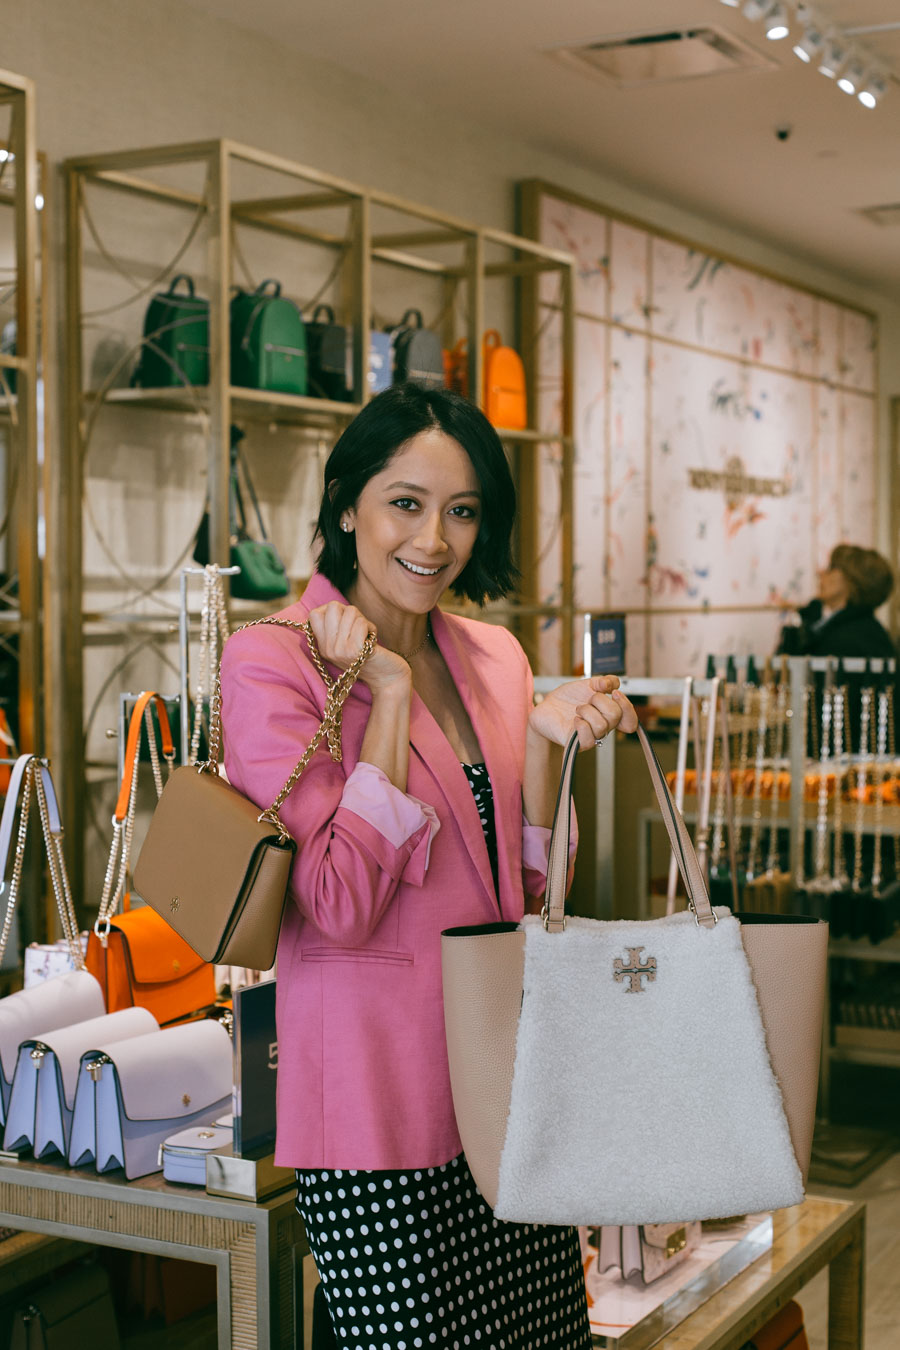 Fashion blogger Lilly Beltran visiting the Tory Burch Outlet store in Houston.